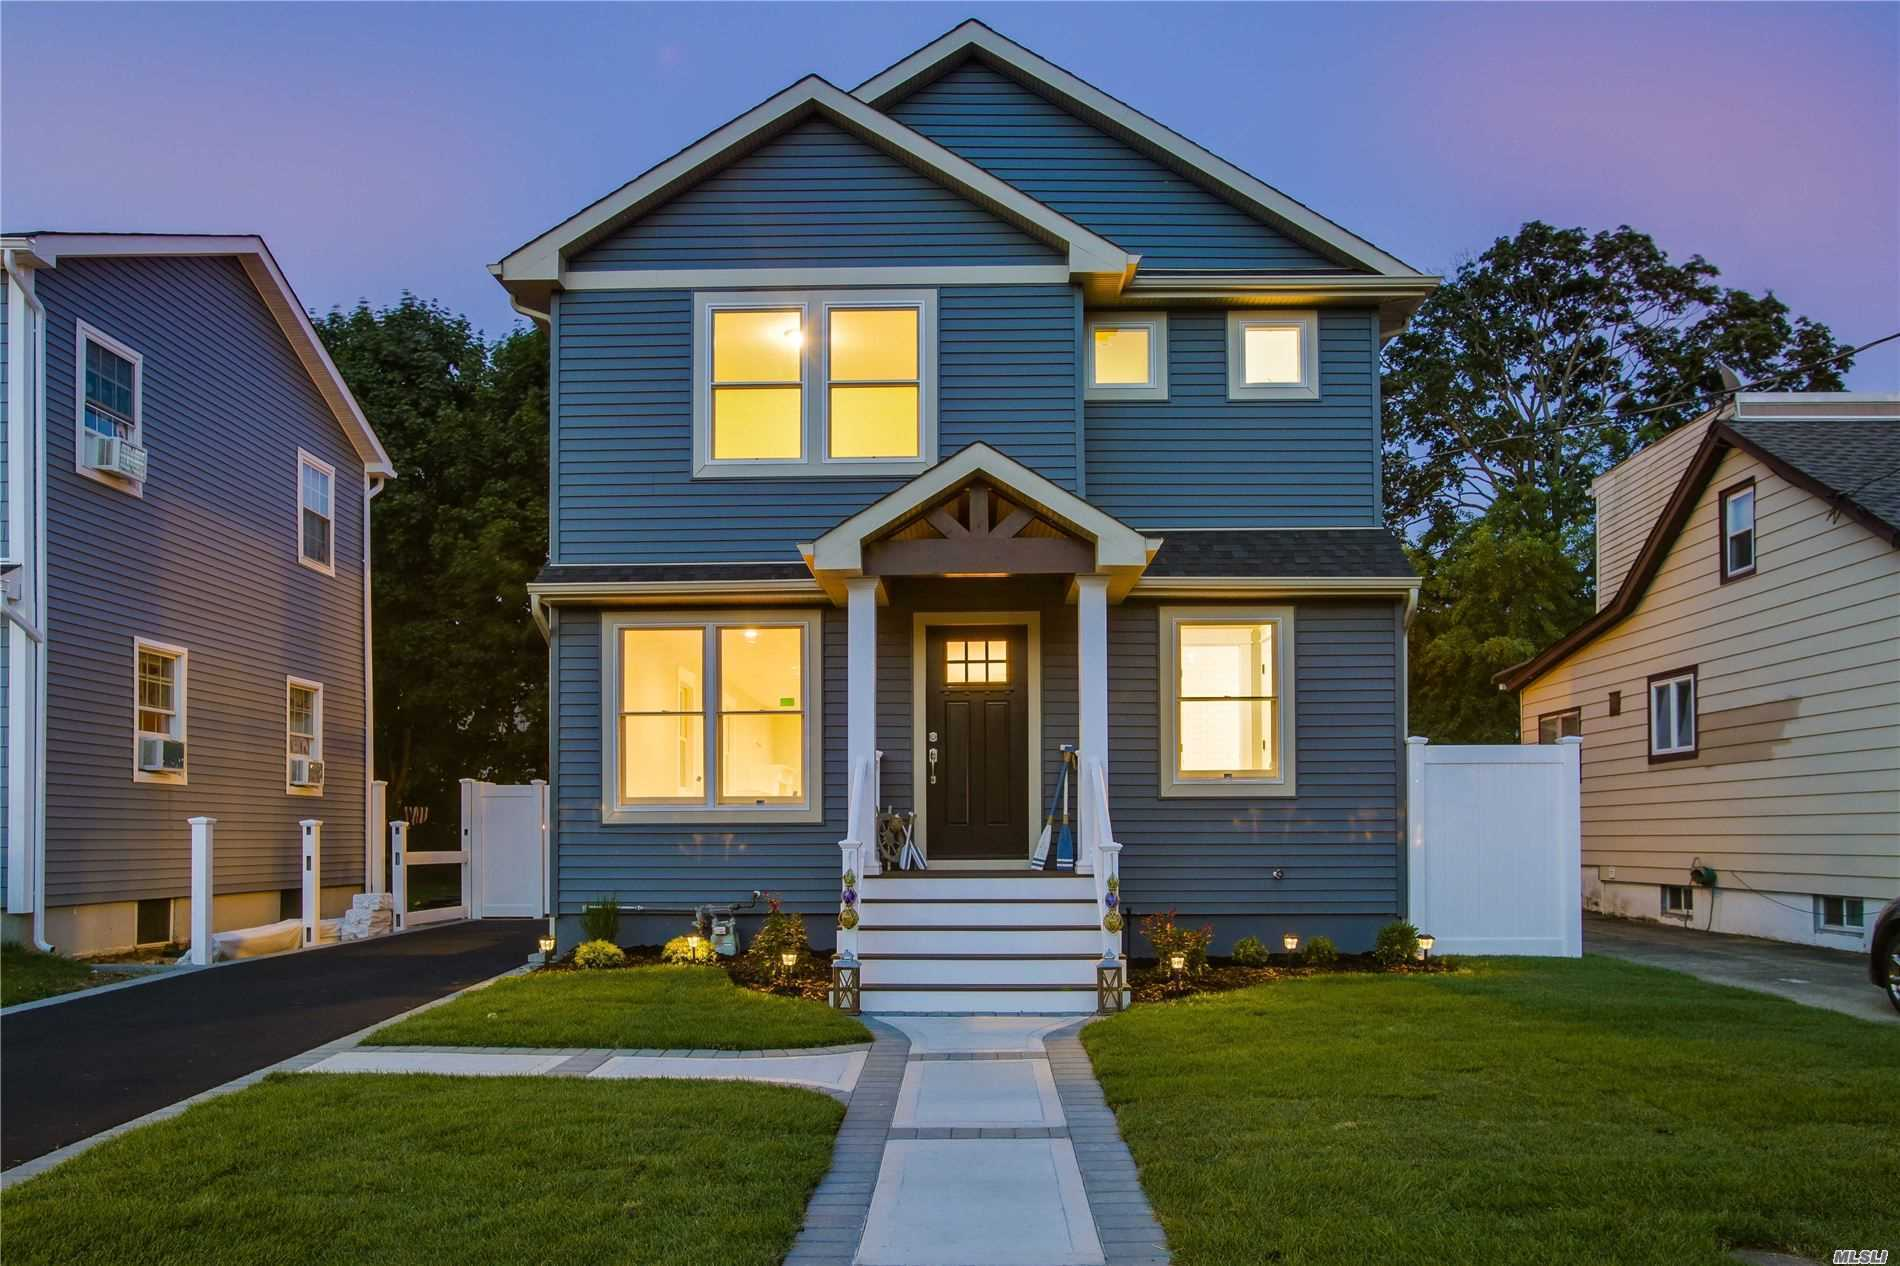 One Of A Kind 4 Bedroom, 3 Full Bathroom Custom Colonial. Brand New Everything W/ Open Floor Plan, Gleaming Hardwood Floors, Chef-Style Kitchen, Designer Bathrooms, All New Windows, Doors, CAC, Trex Deck, In-Ground Sprinklers, Landscaped Throughout. Make An Offer Before It's Gone!